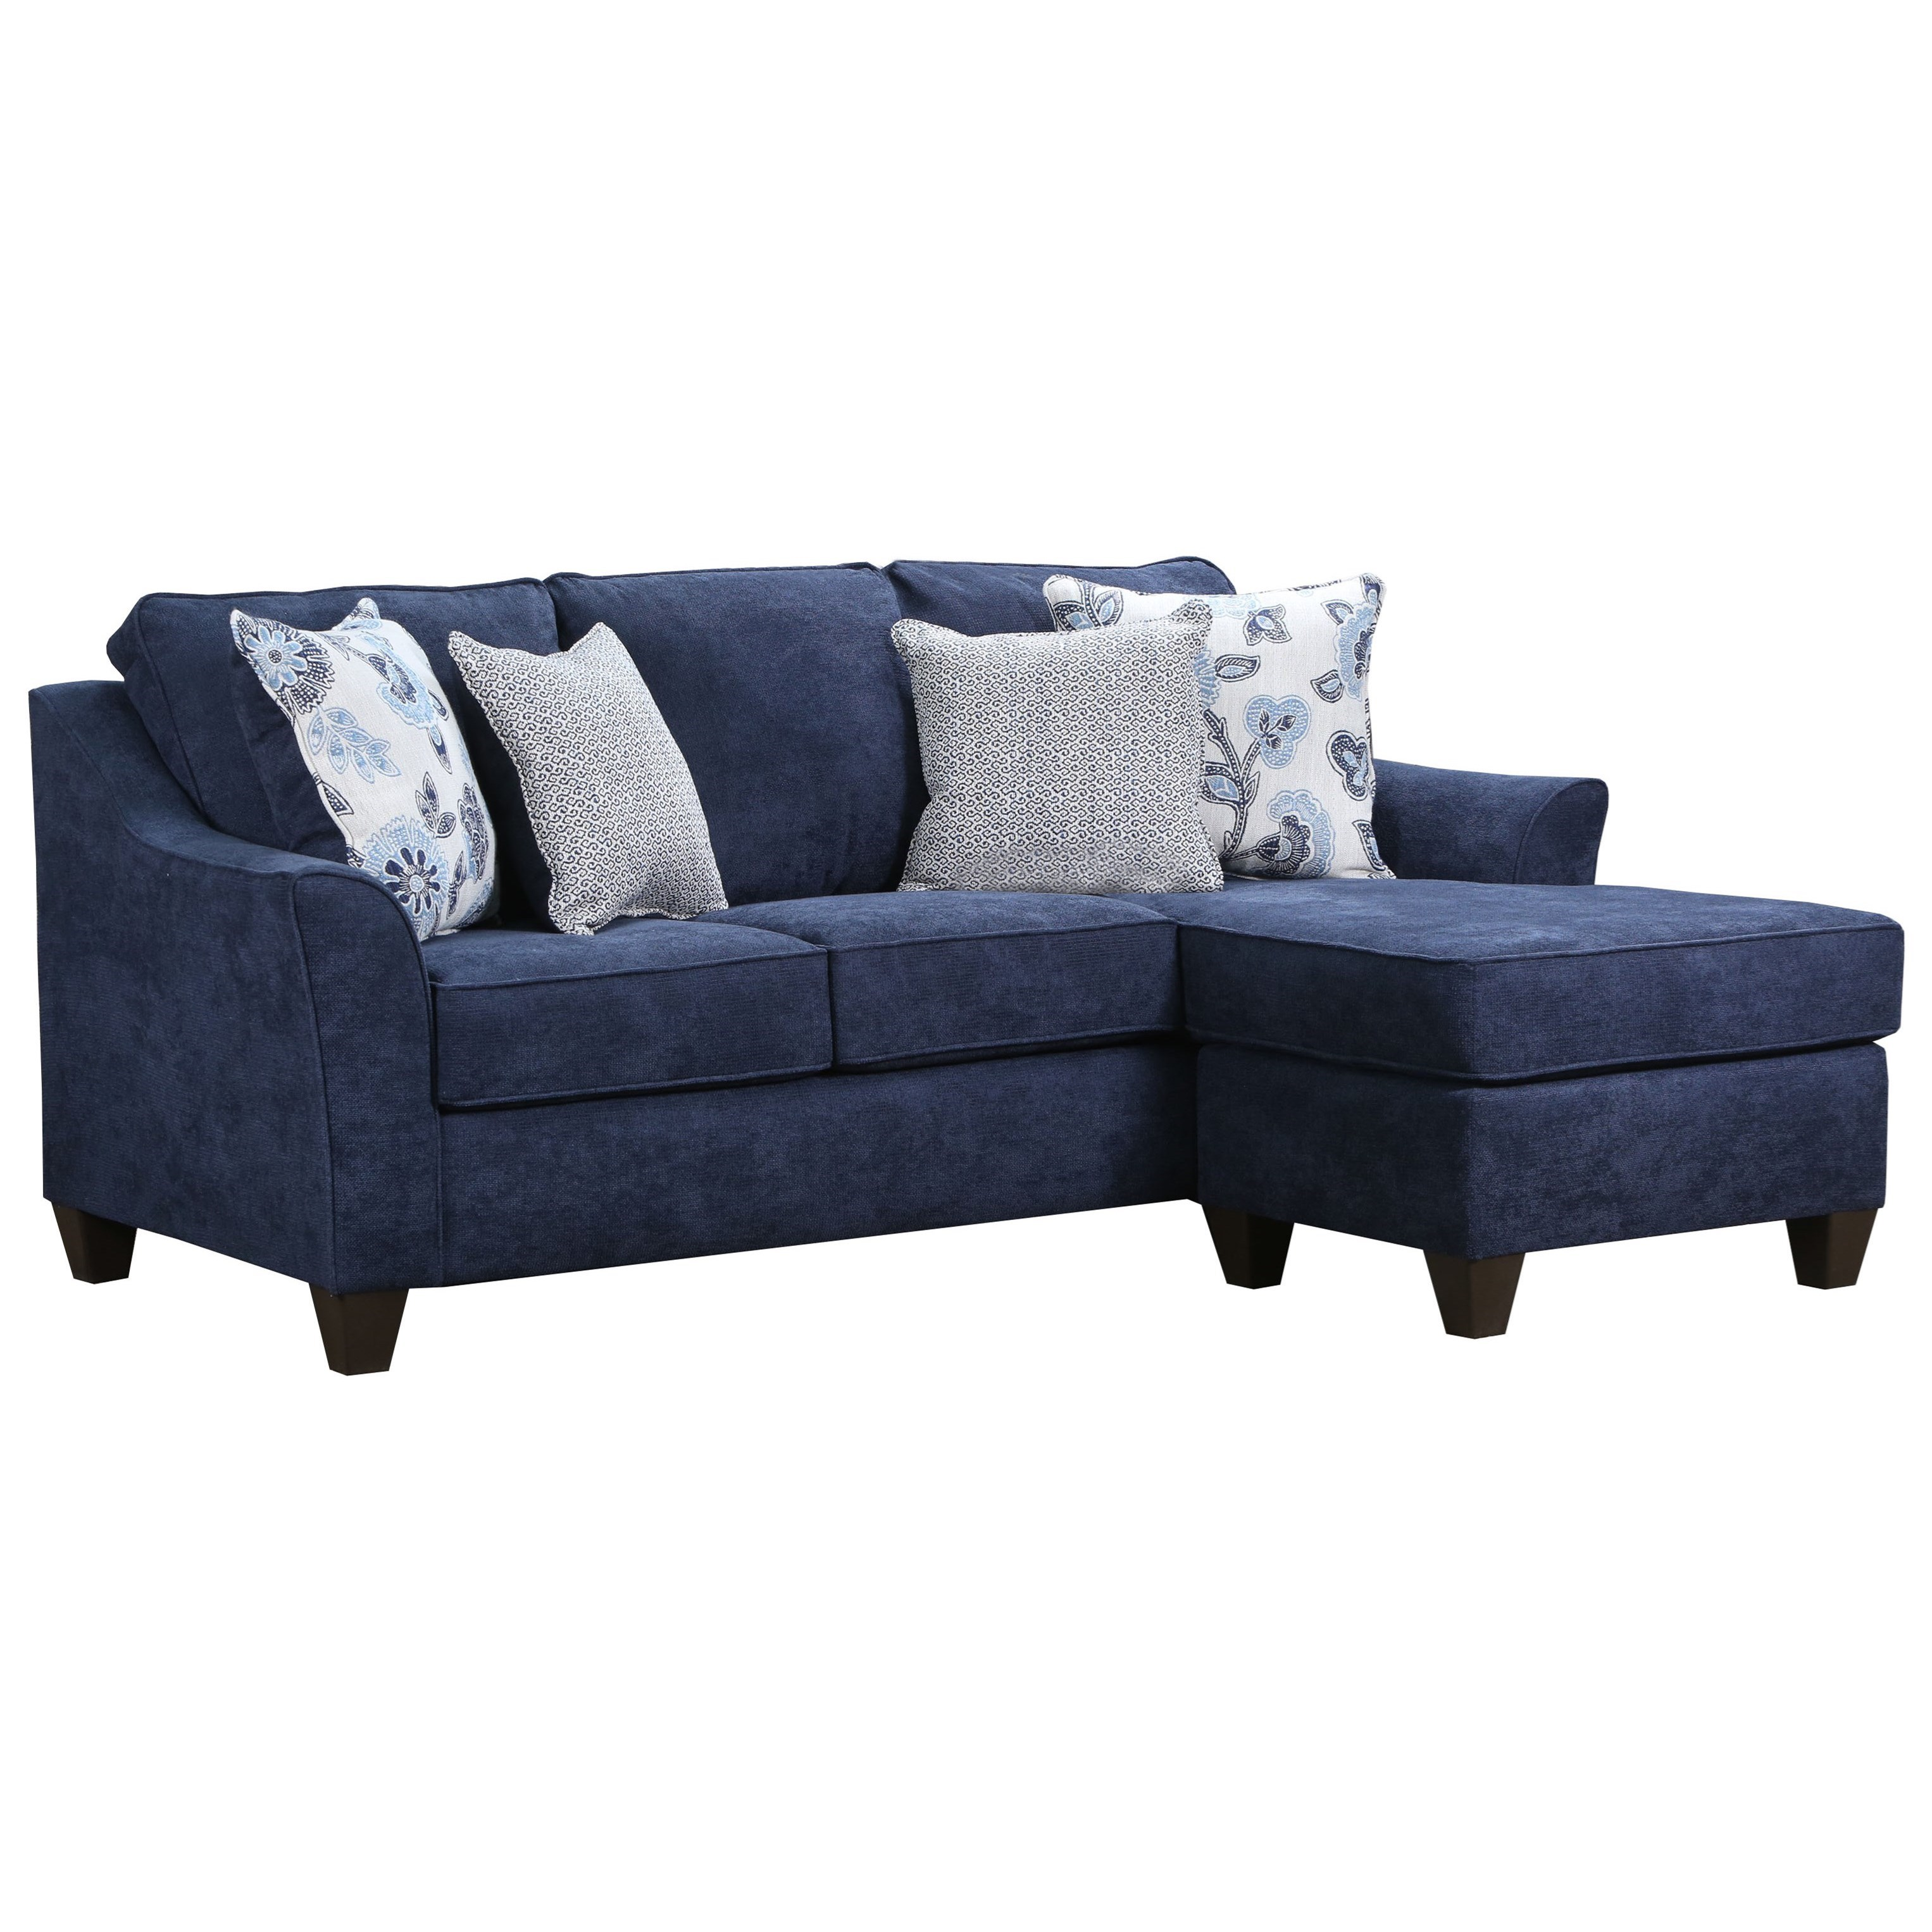 4330 Sofa with Chaise by United Furniture Industries at Pilgrim Furniture City